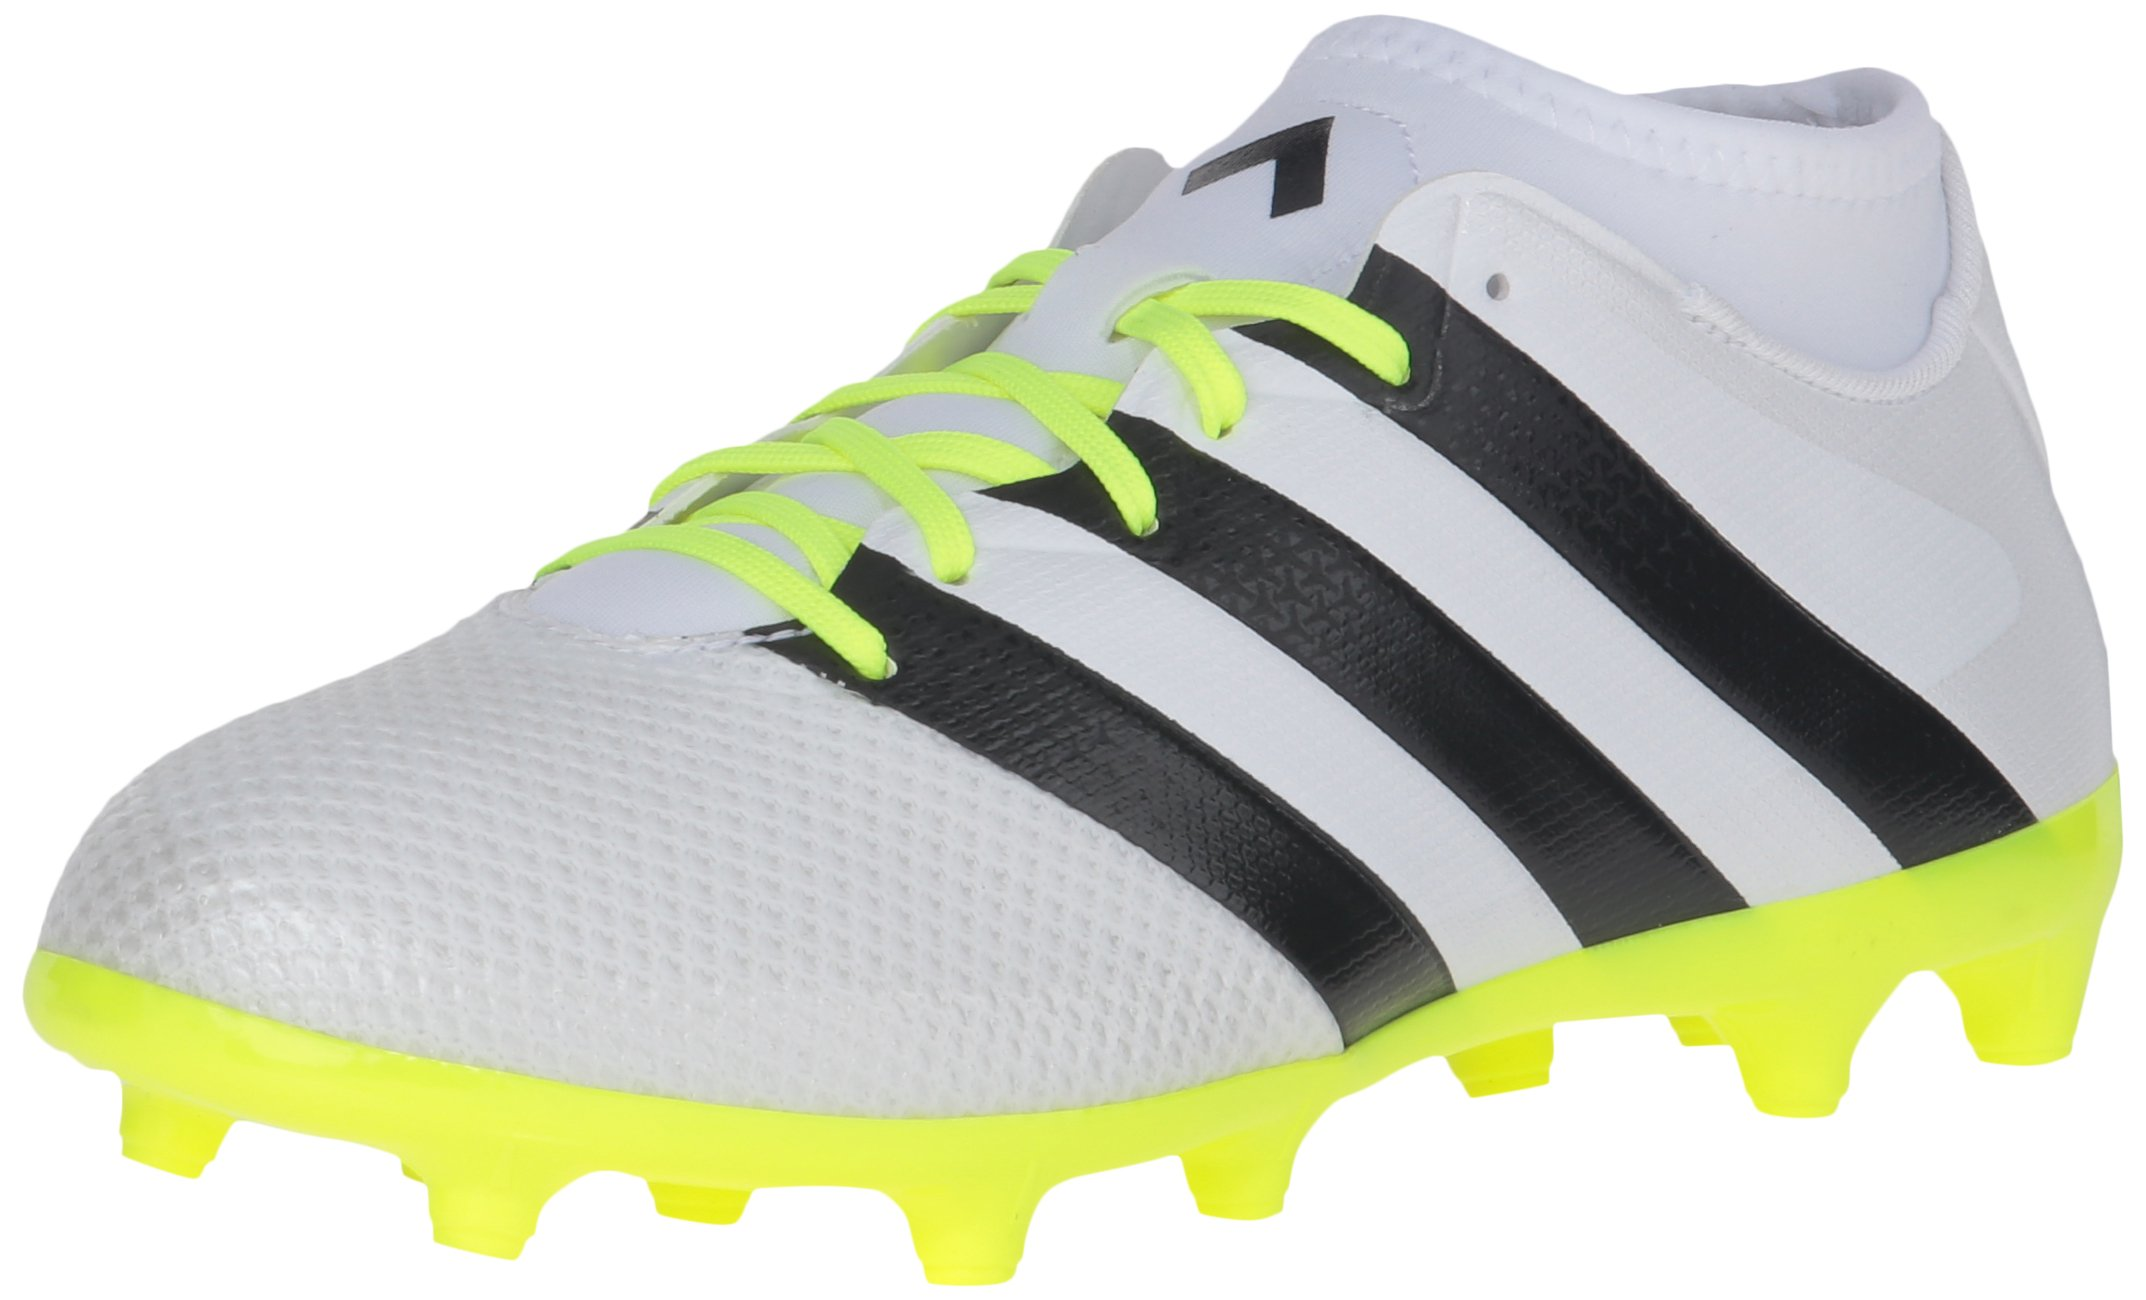 adidas Women's Ace 16.3 Primemesh FG/AG W Soccer Shoe, White/Black/Electricity, 9 M US by adidas (Image #1)